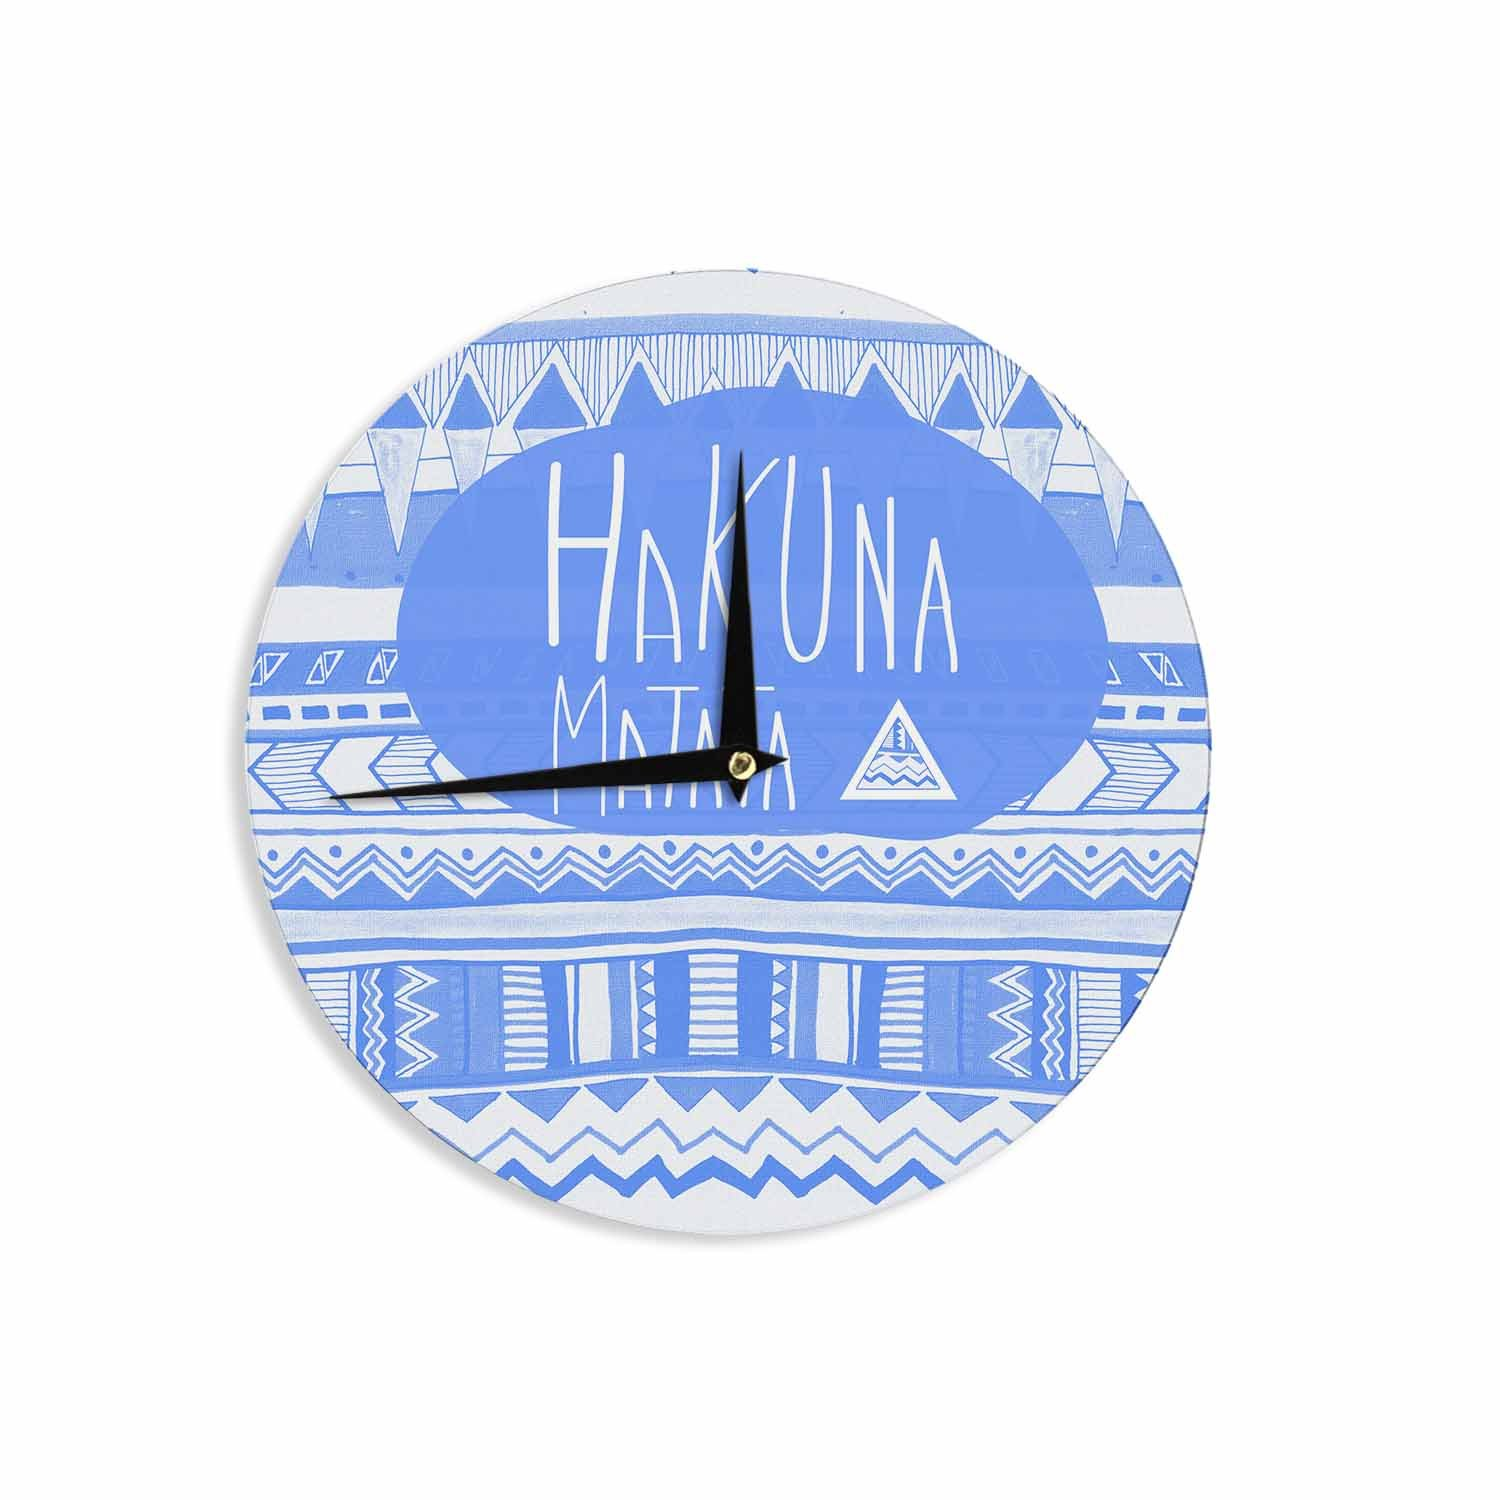 12 Wall Clock Kess InHouse Vasare NAR Hakuna Matata Azure Blue White Illustration